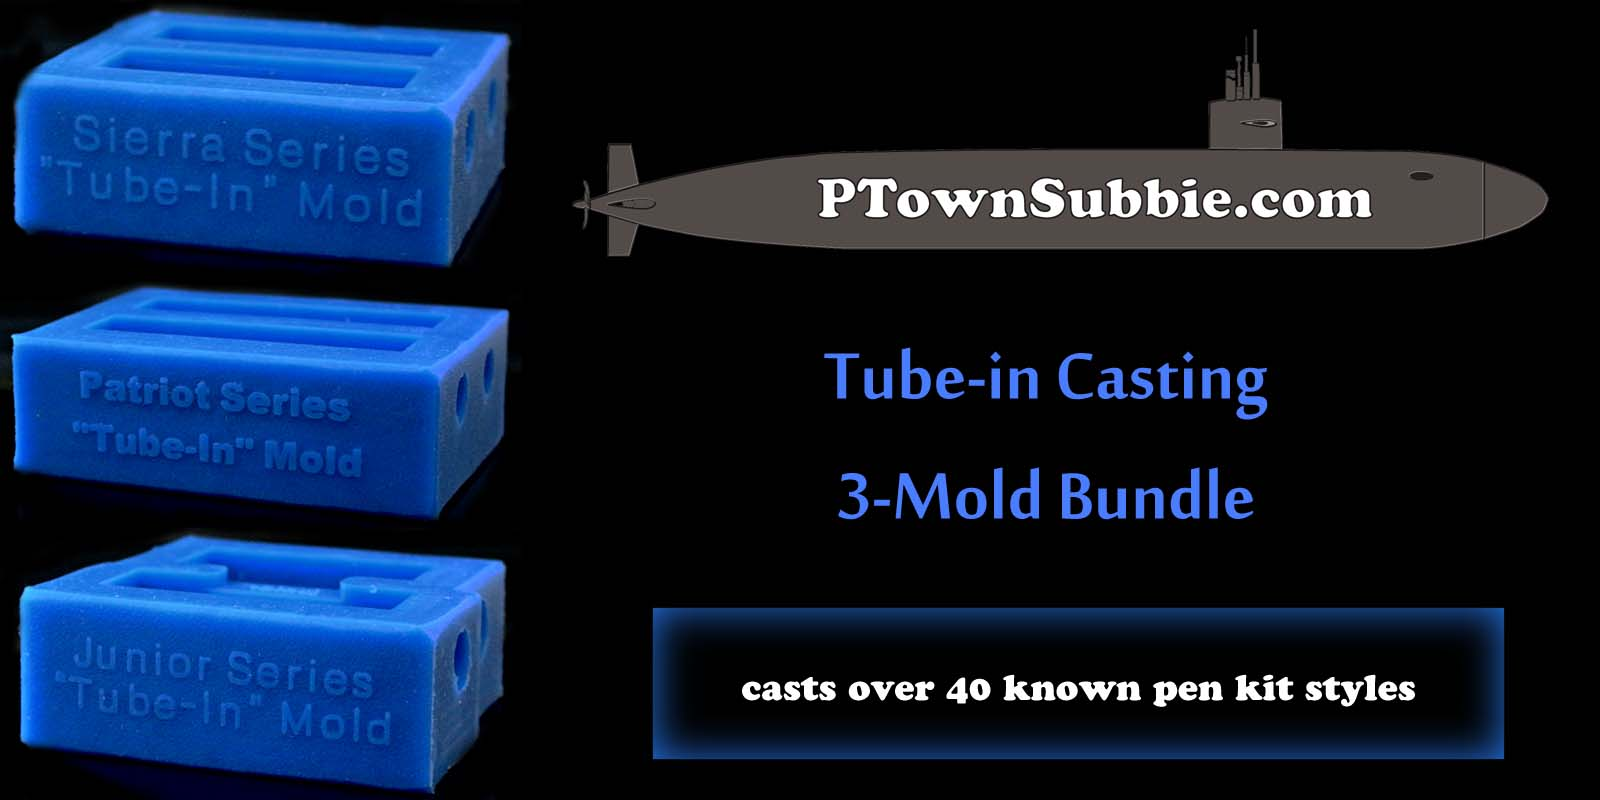 Tube-in Specials from PTownSubbie.com